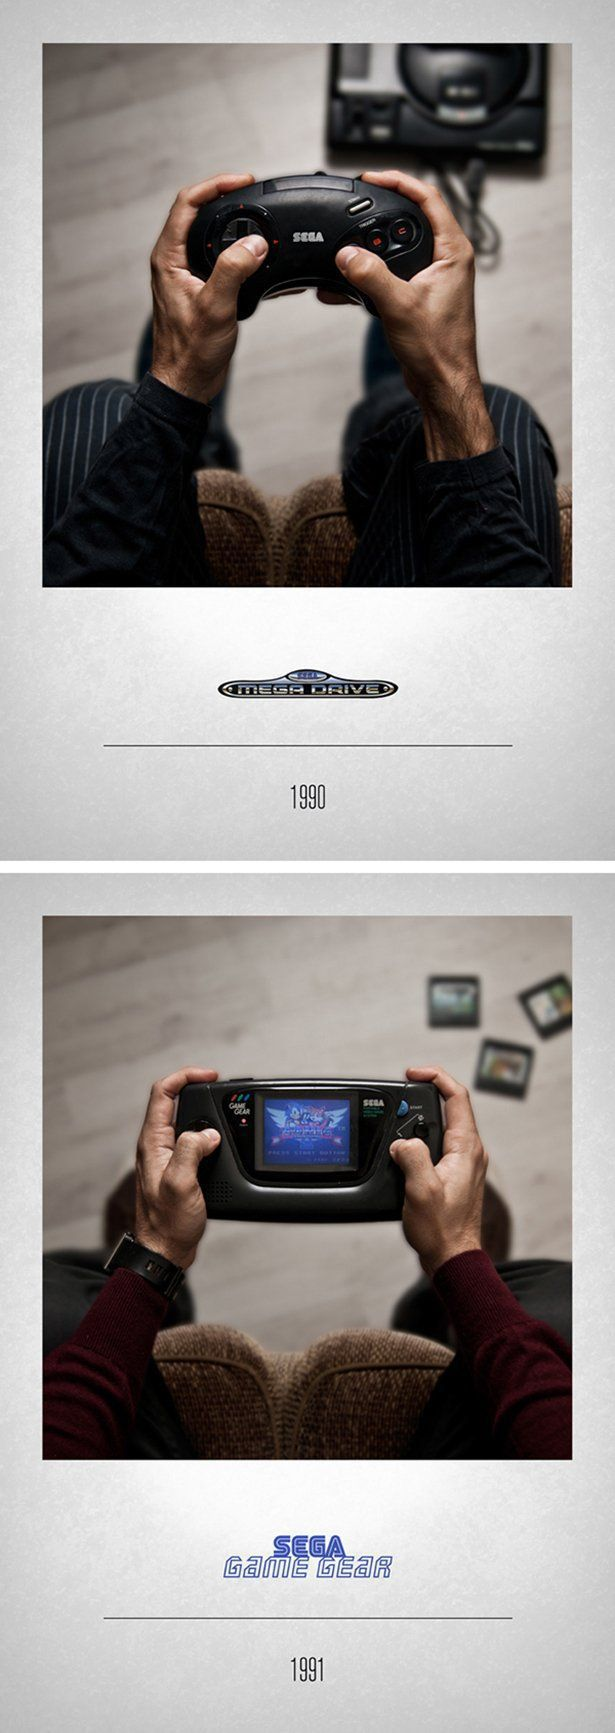 how_video_game_controllers_have_changed_over_the_years_640_high_08